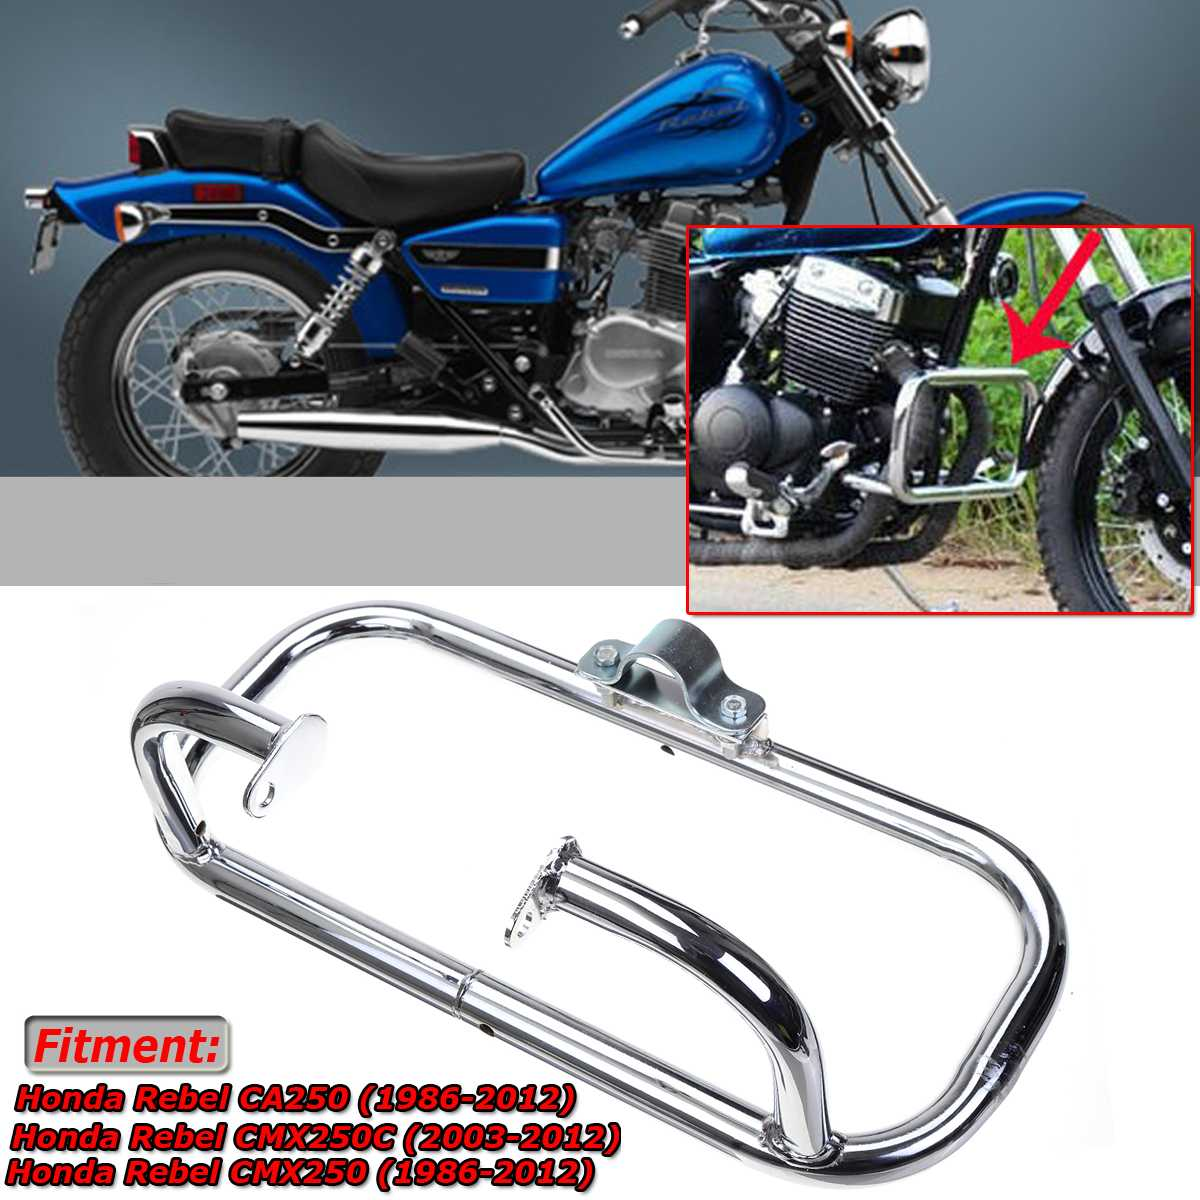 small resolution of new engine guard crash bar motorcycle front engine guard crash bar for honda rebel 250 ca250 cmx250 cmx250c metal safety bumper in bumpers chassis from